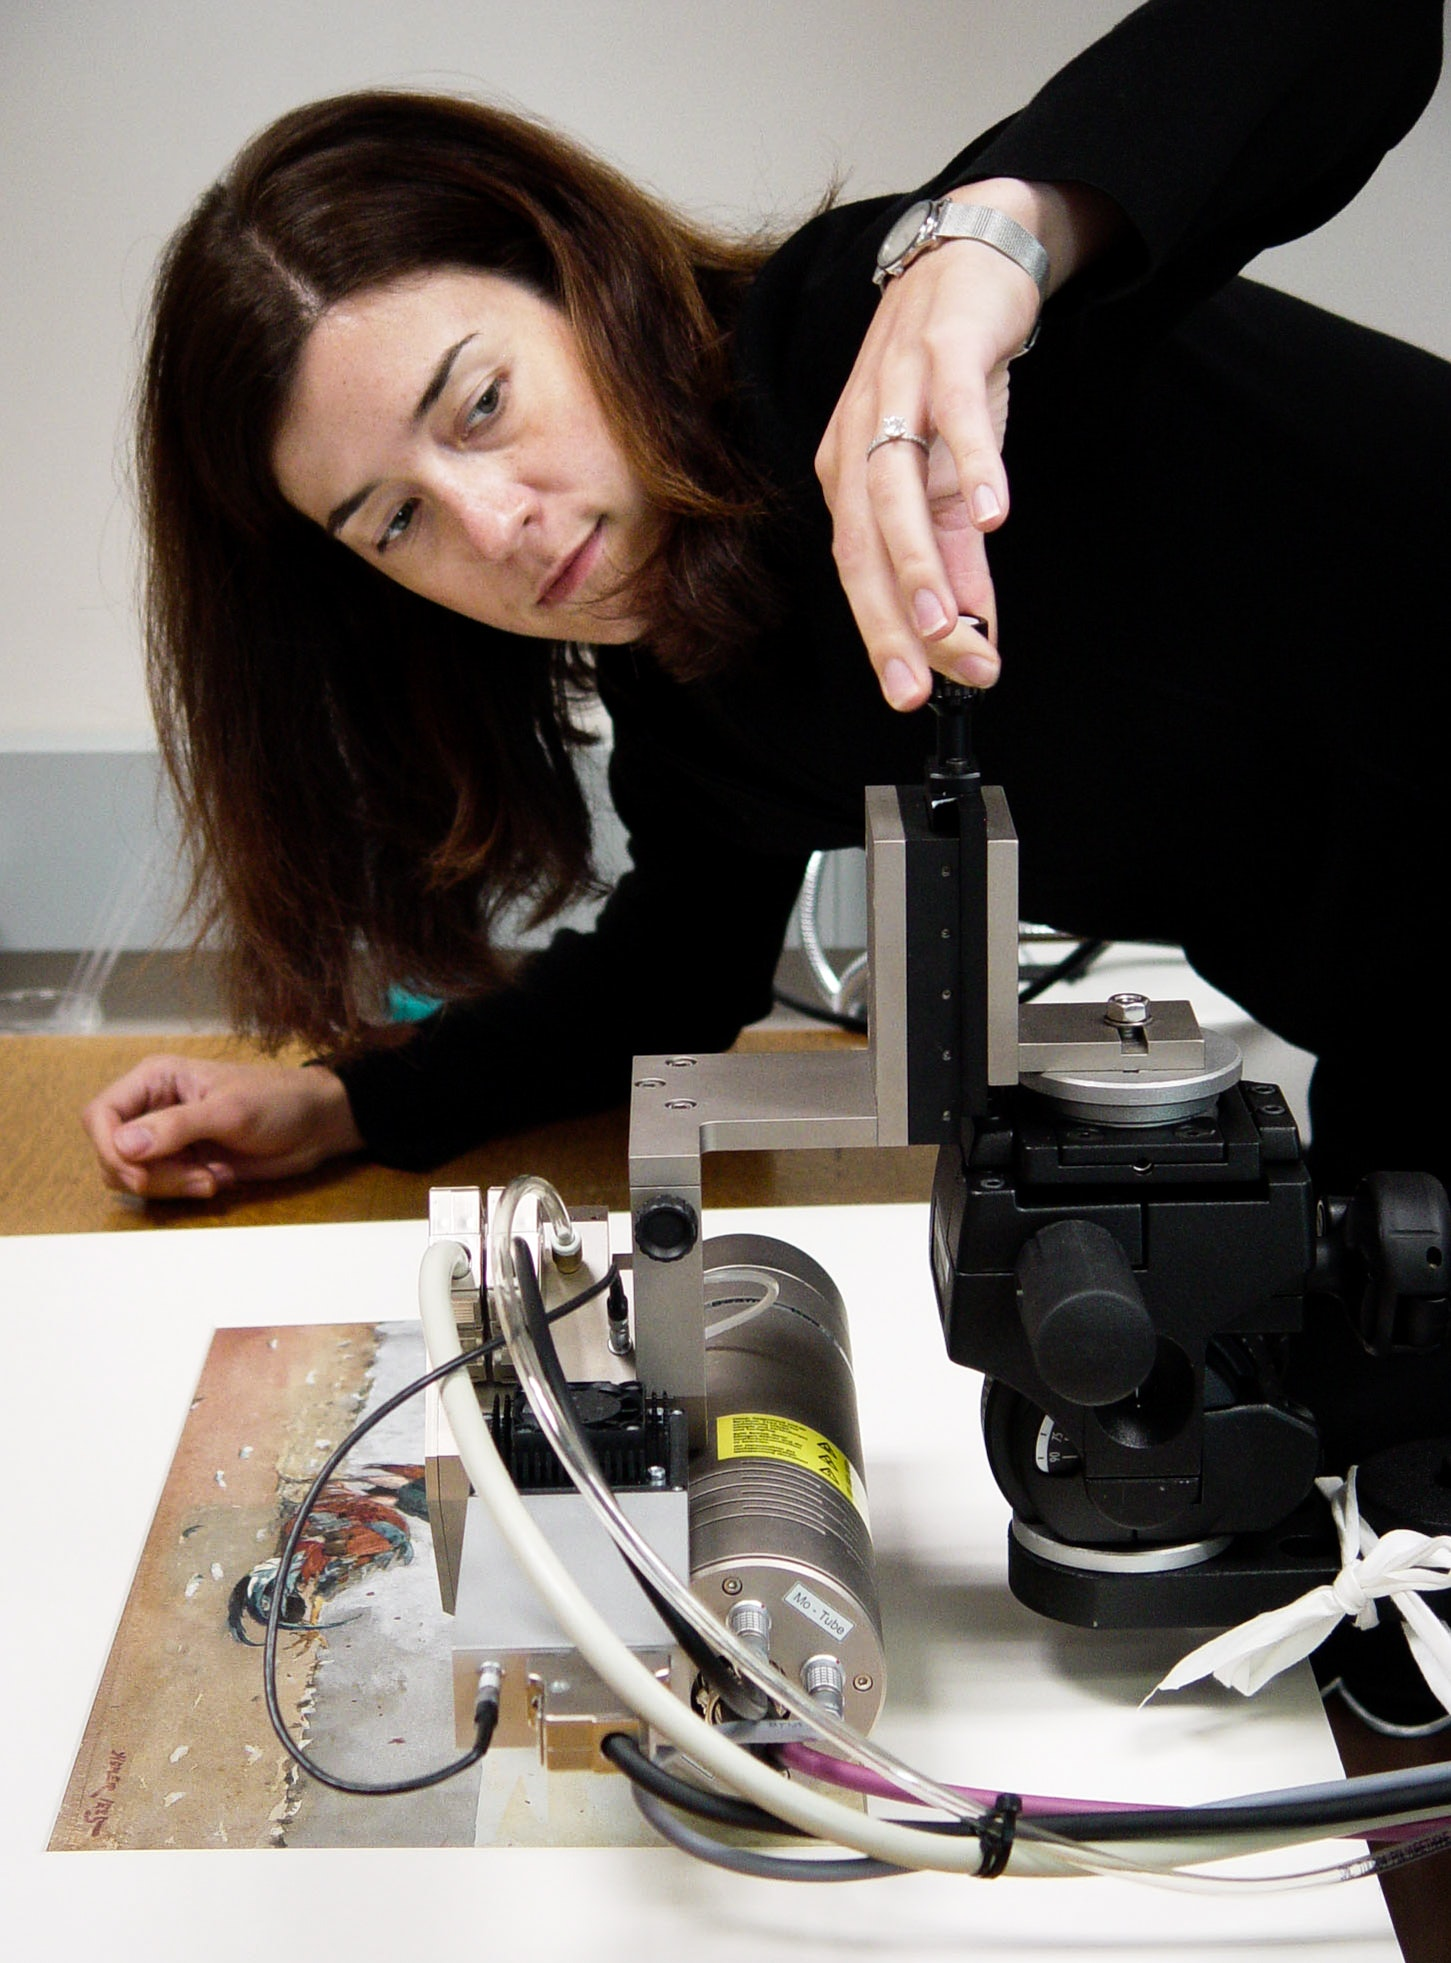 A conservator uses a machine to evaluate a print work on paper.